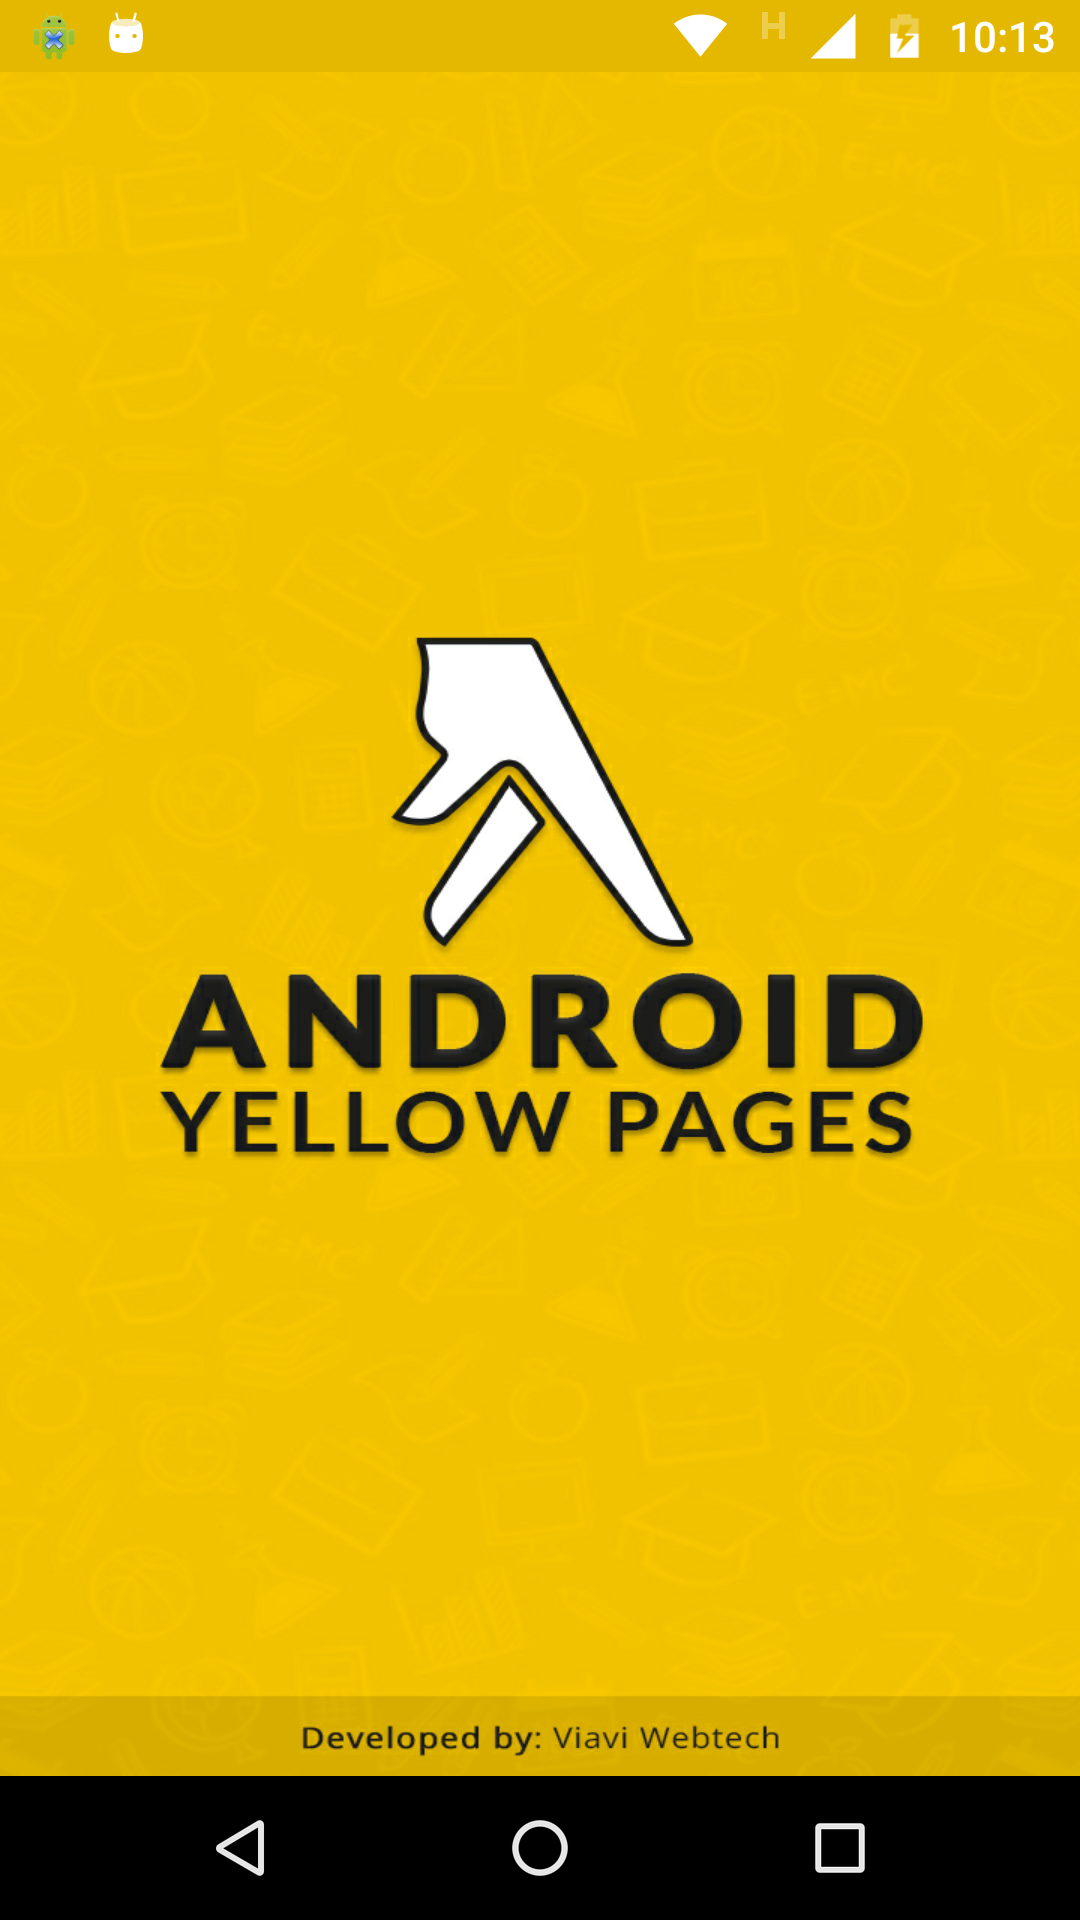 Android Yellow Pages With Material Design.